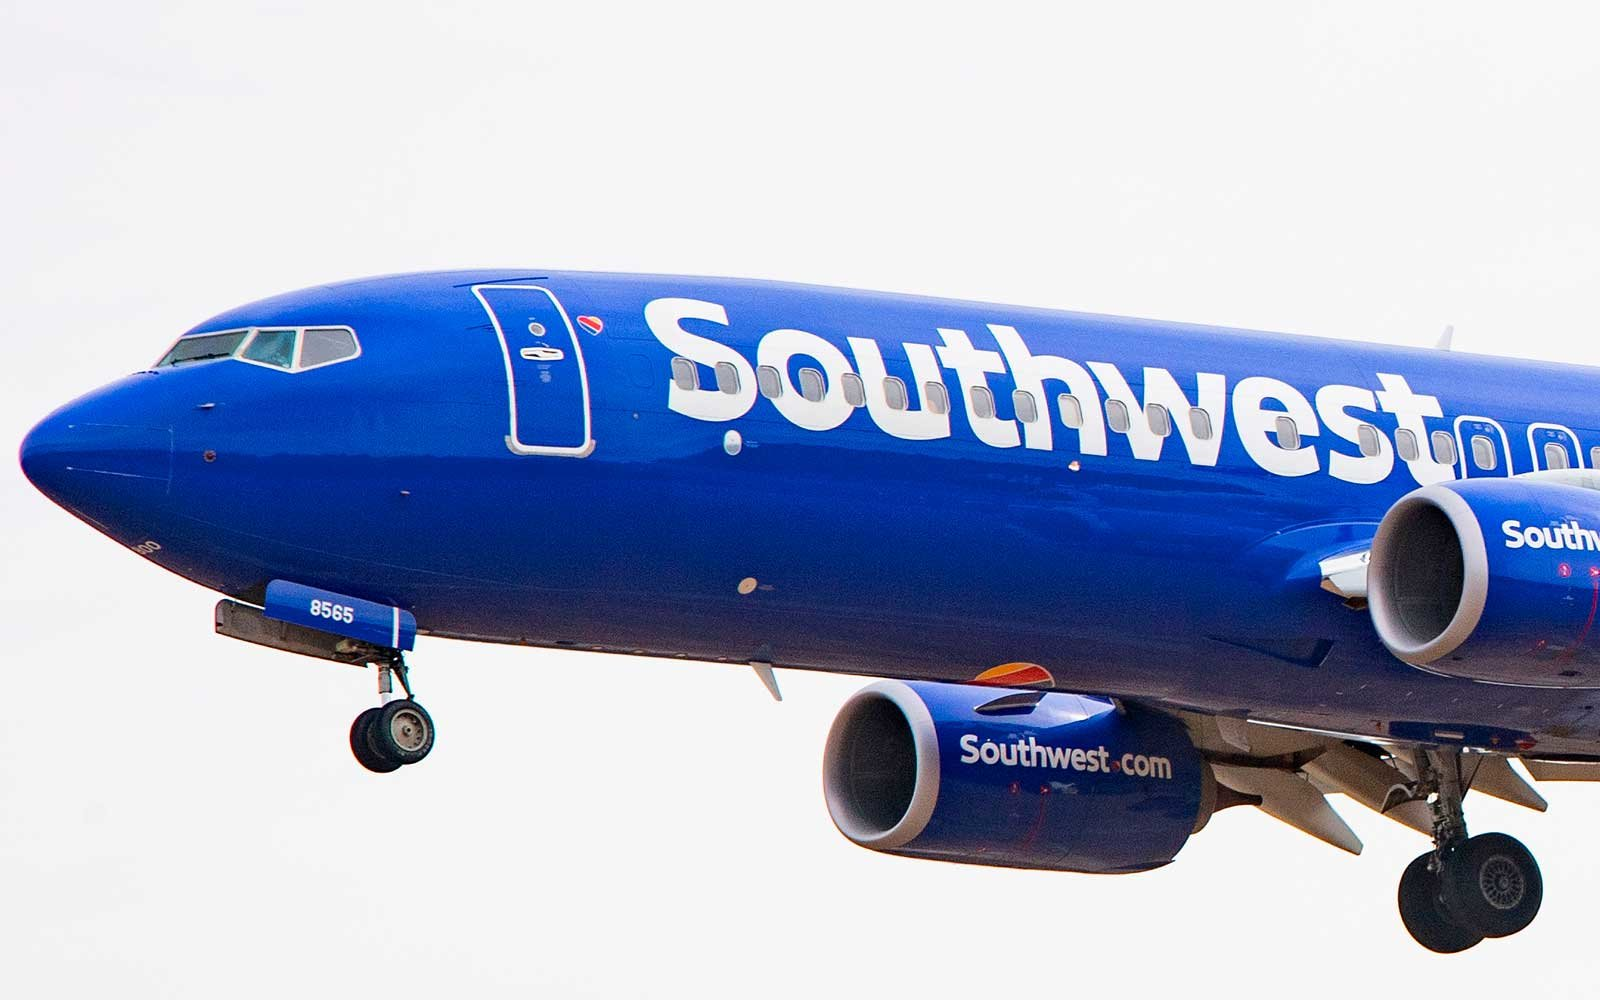 Southwest Offering Flights Starting at $49 Around the U.S. and $71 to the Caribbean